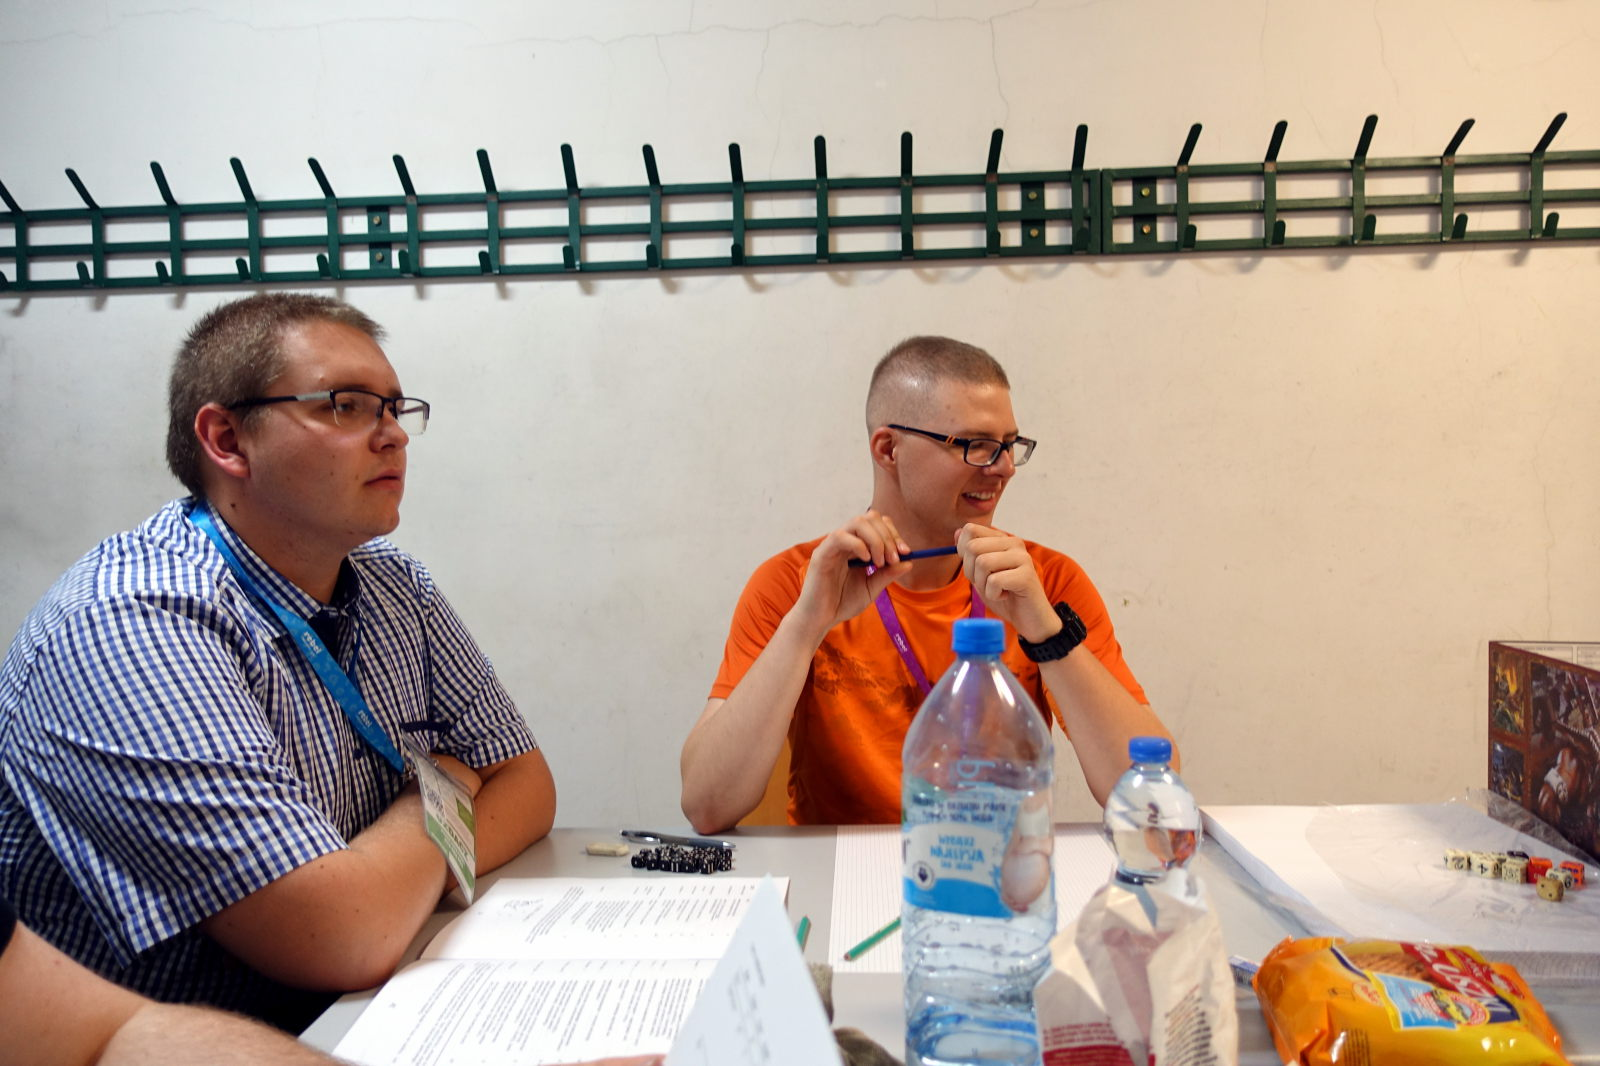 Two man sitting at the table. One to the left wears shirt. Second wears orange t-shirt.